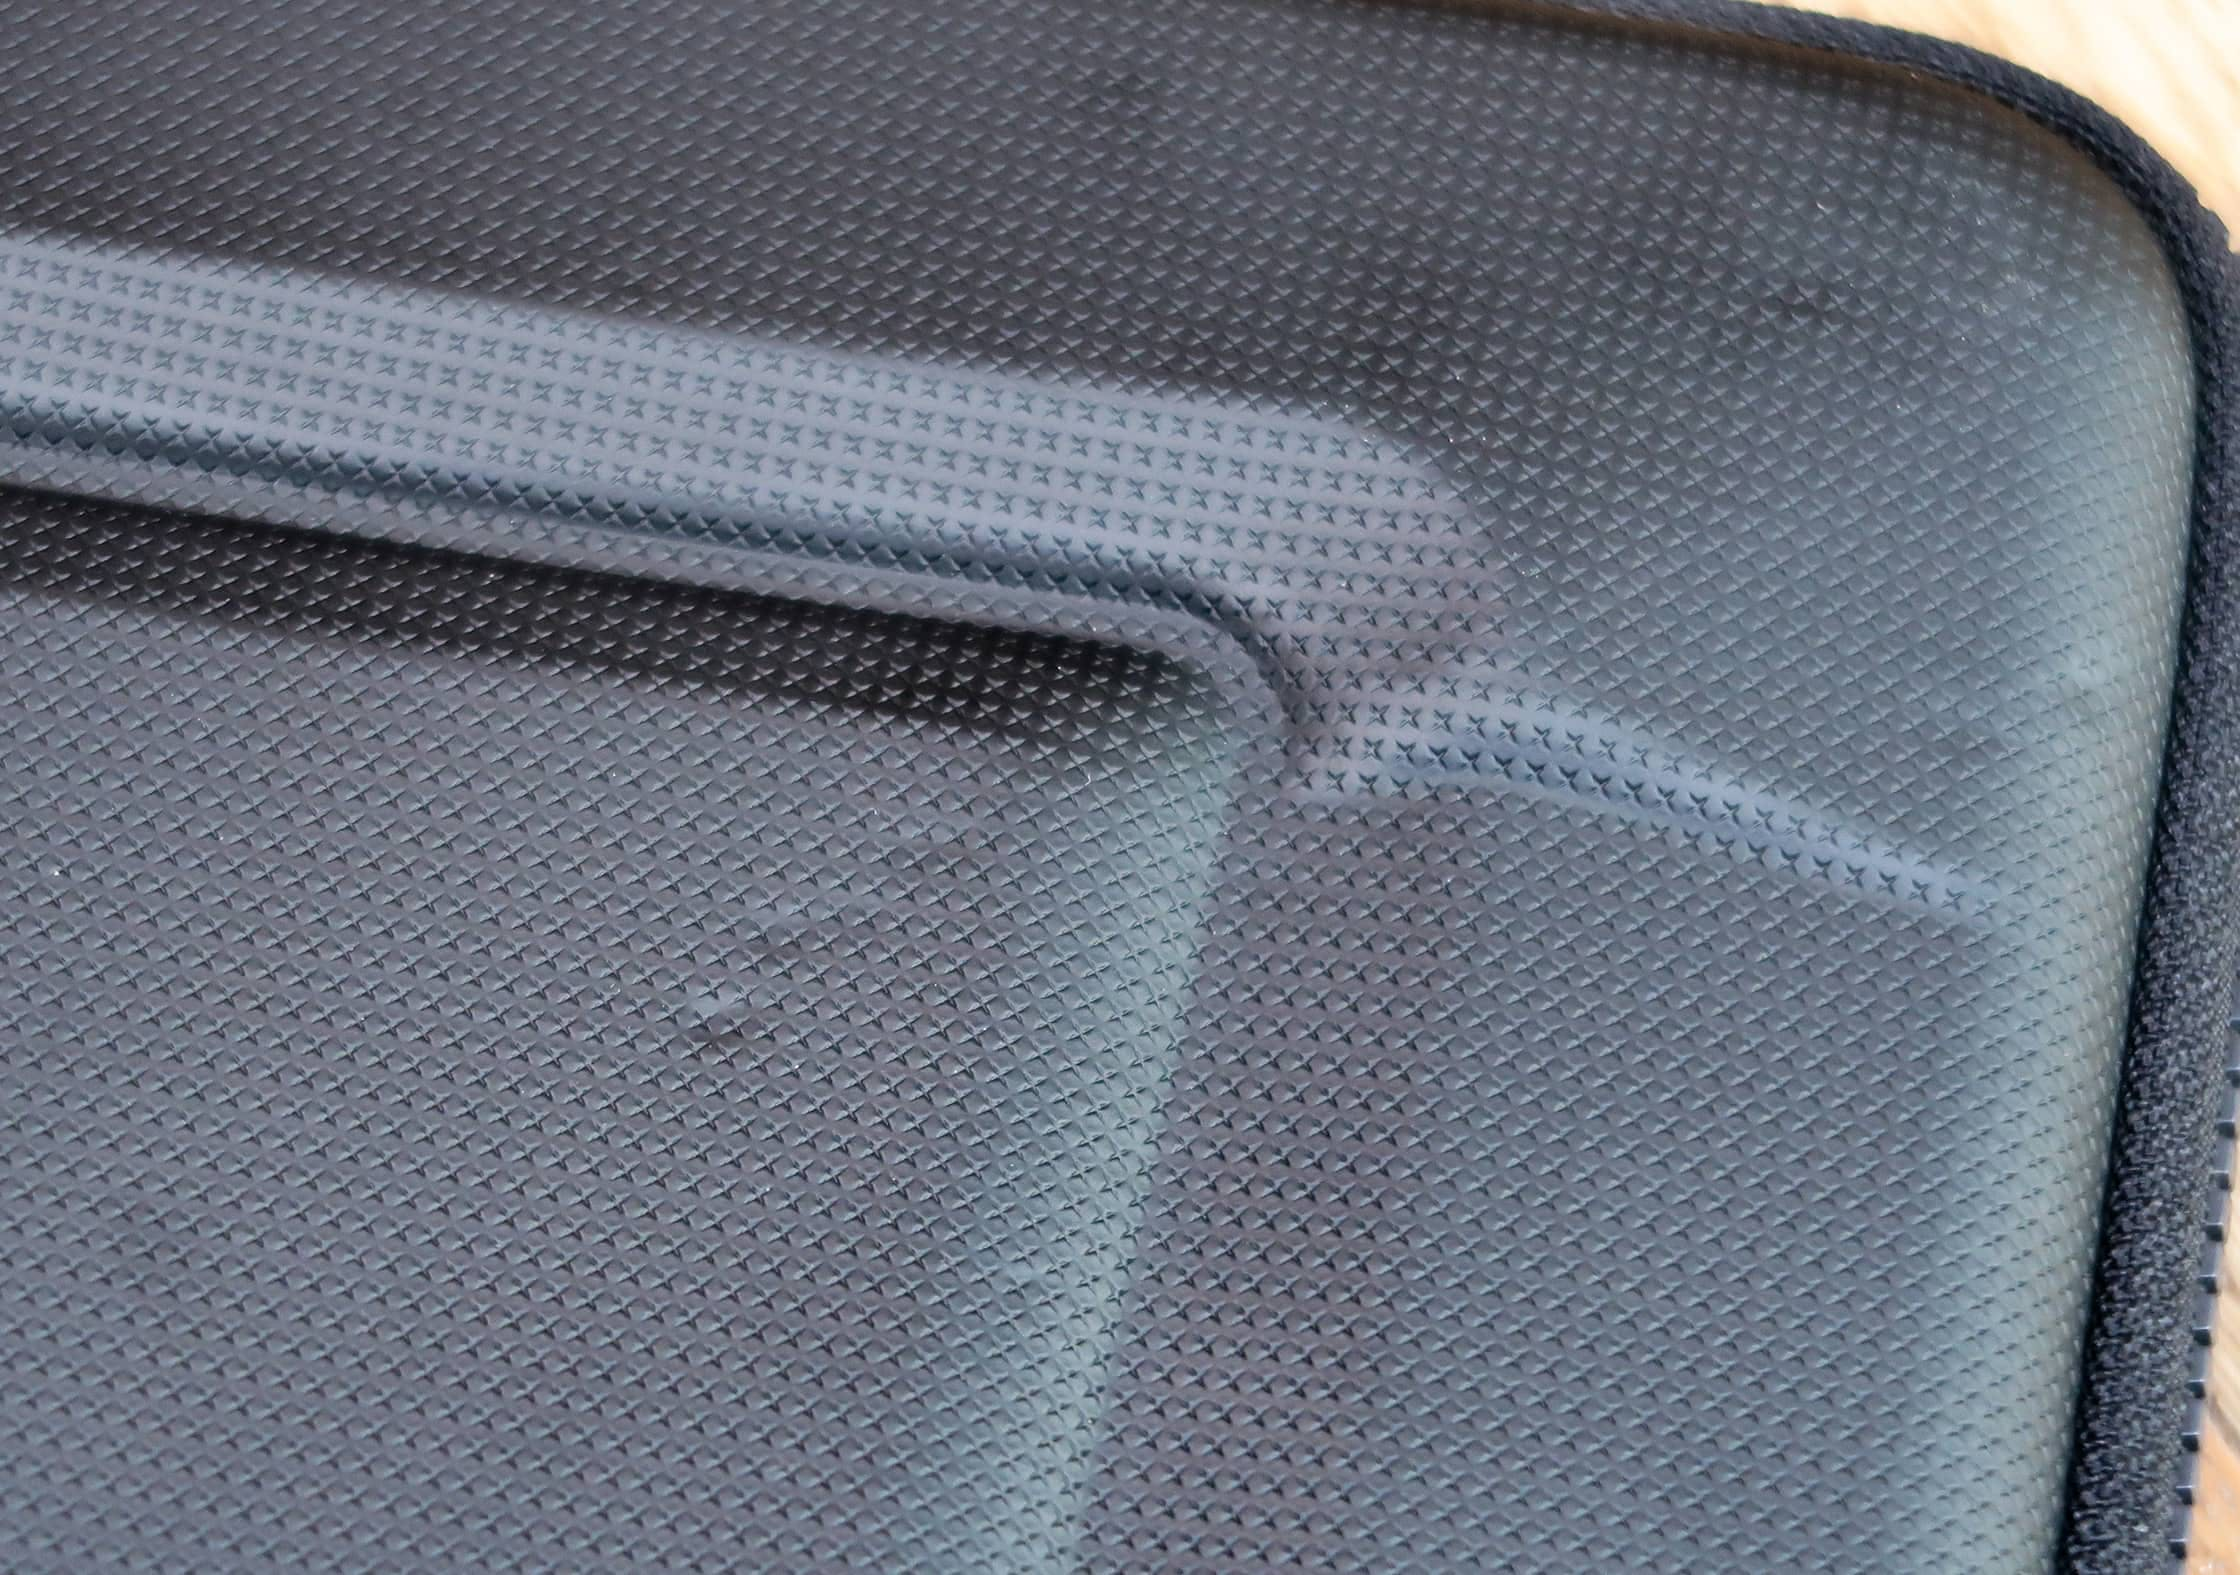 Small Dents In The PU Material Of The Thule Gauntlet 3.0 Laptop Sleeve